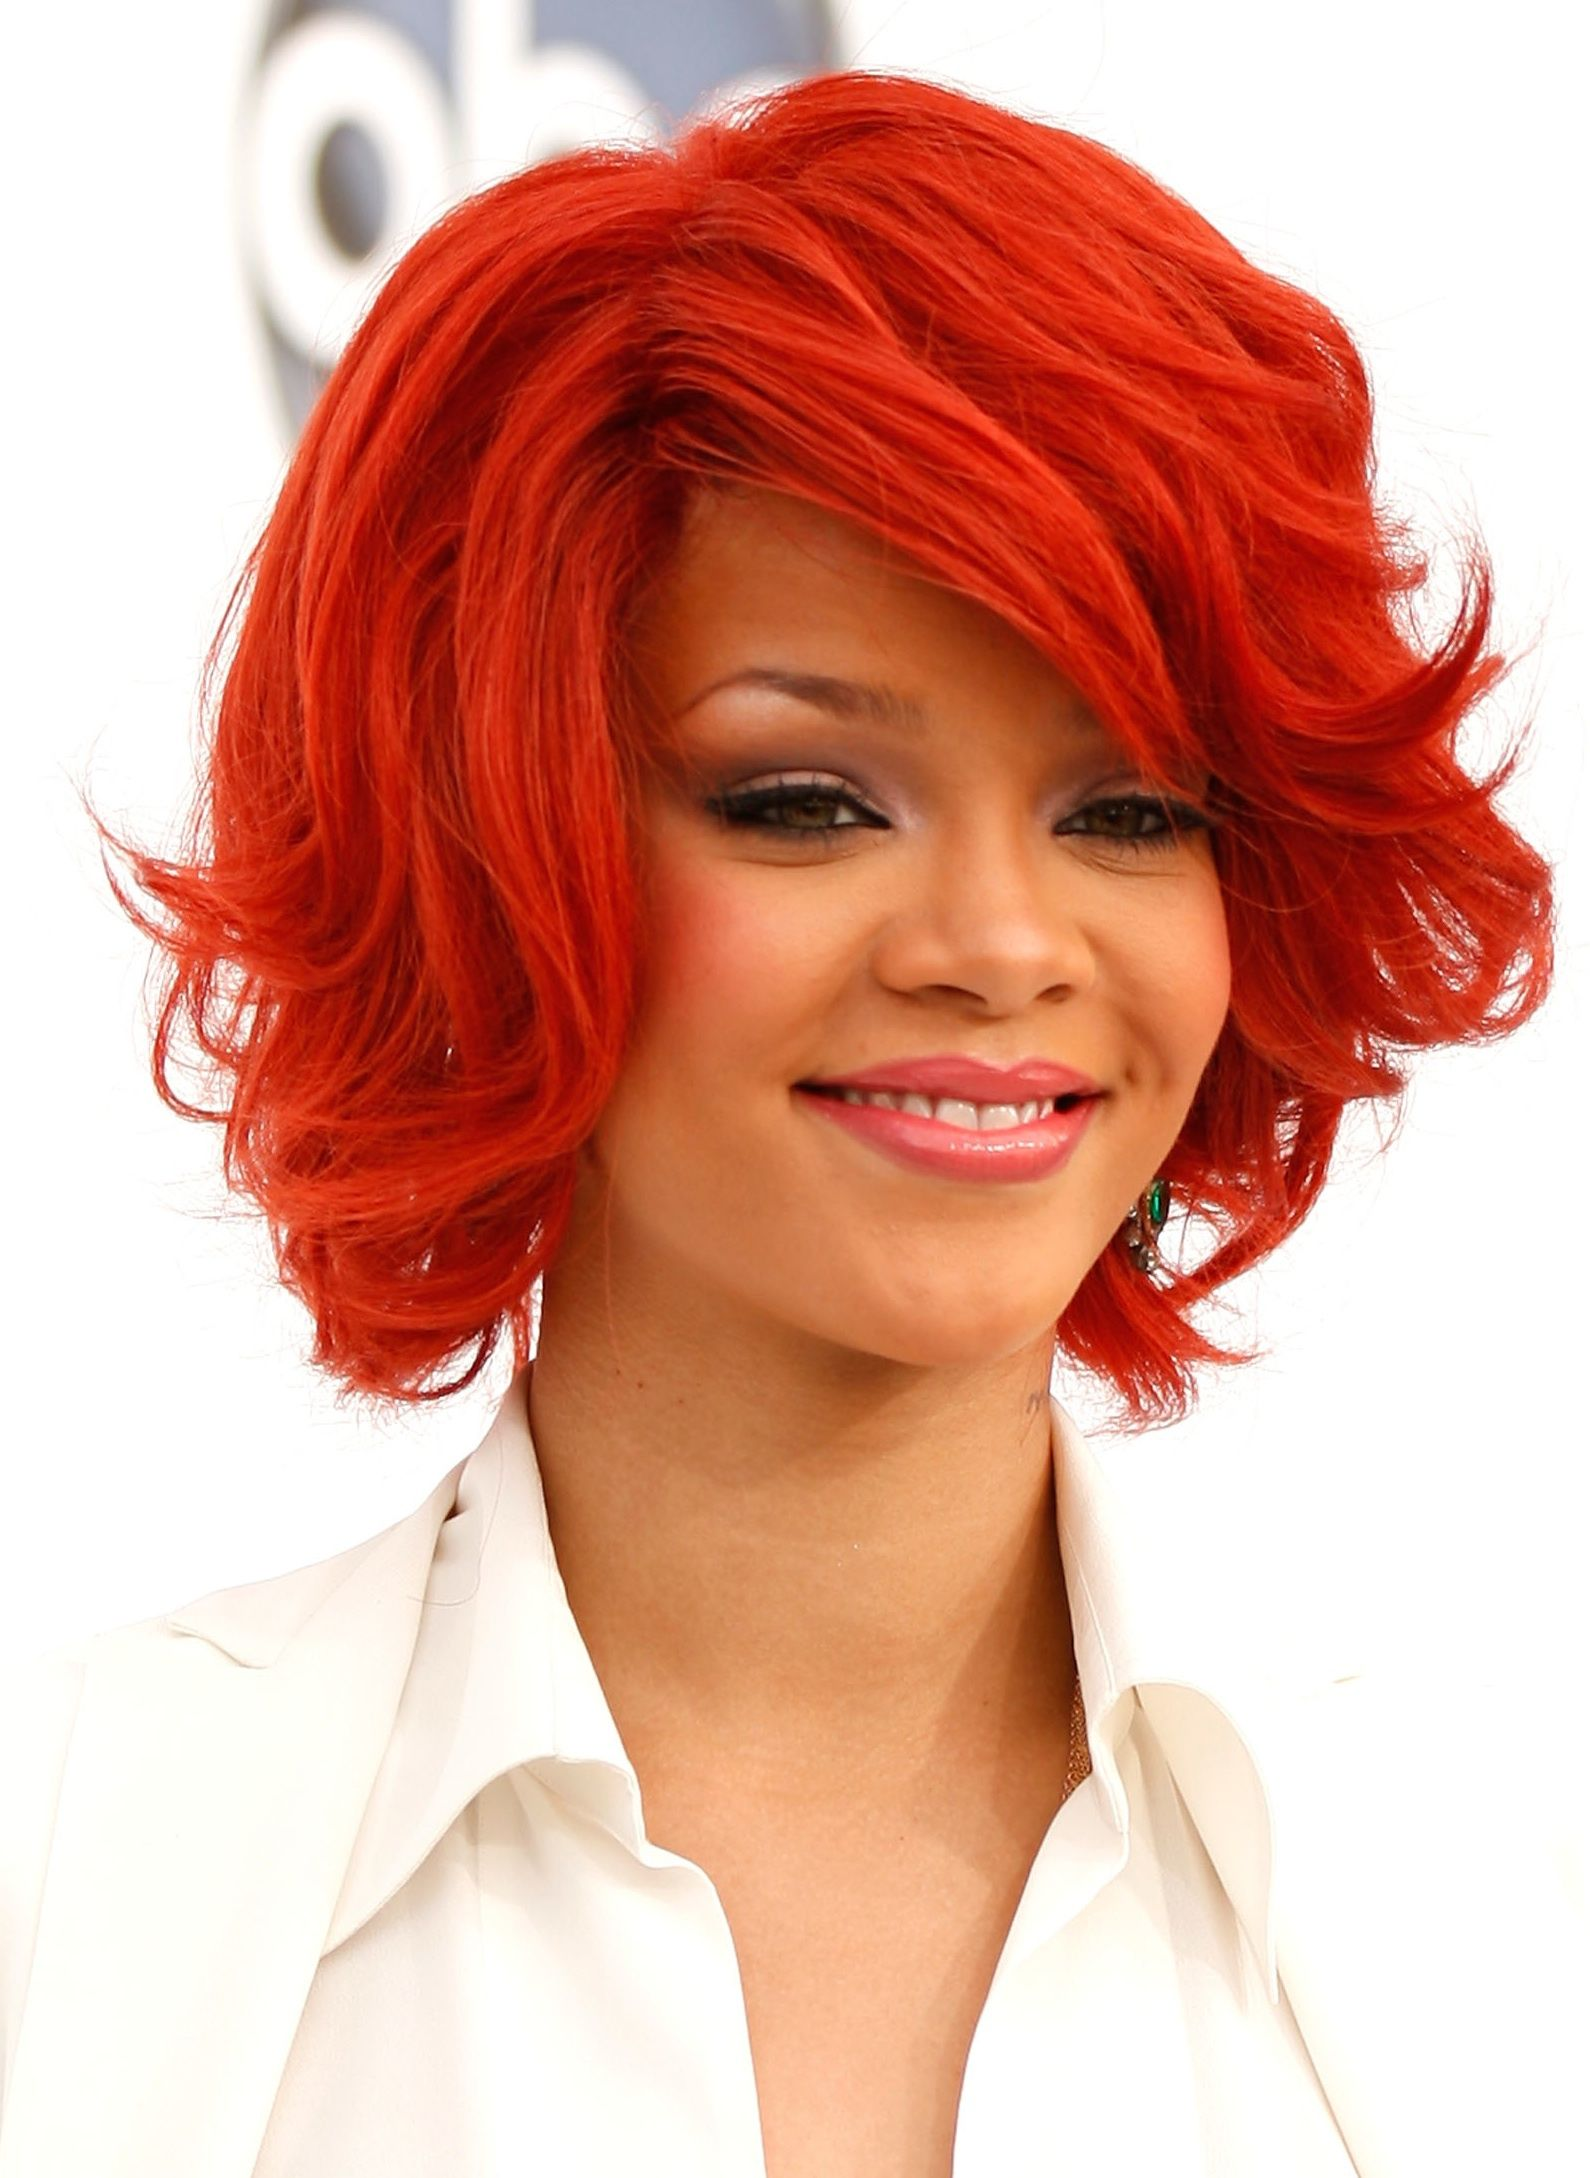 20 Ways to Wear Pastel Colored Hair | Rihanna hairstyles